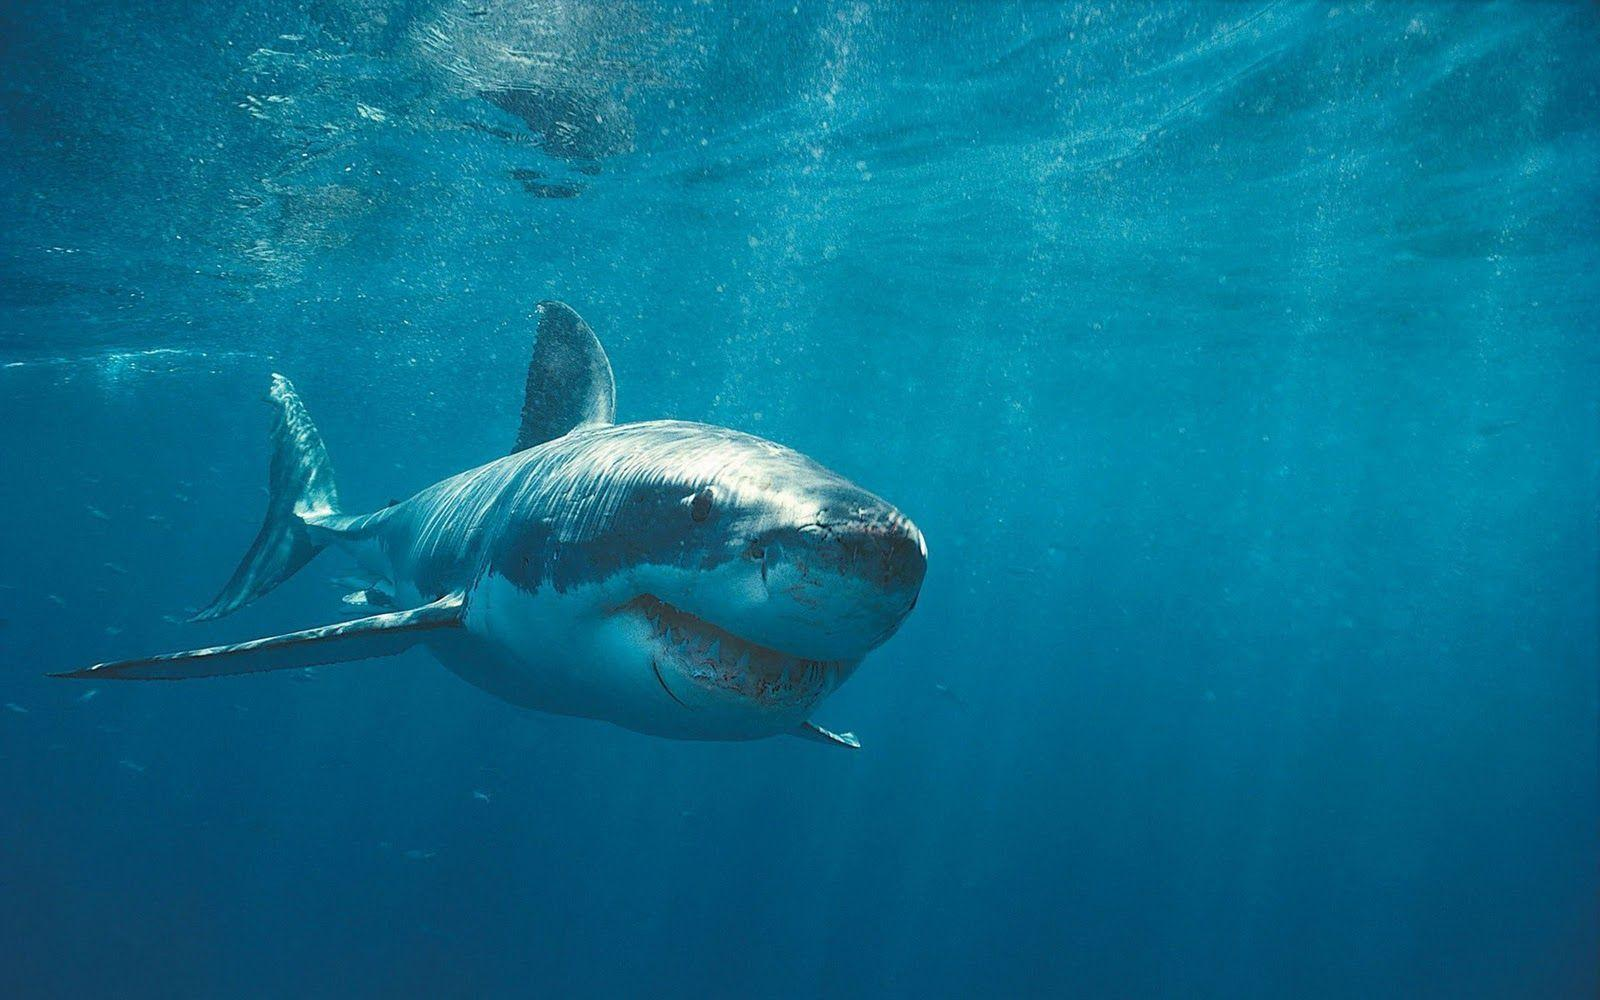 Sharks in the ocean - Barbaras HD Wallpapers